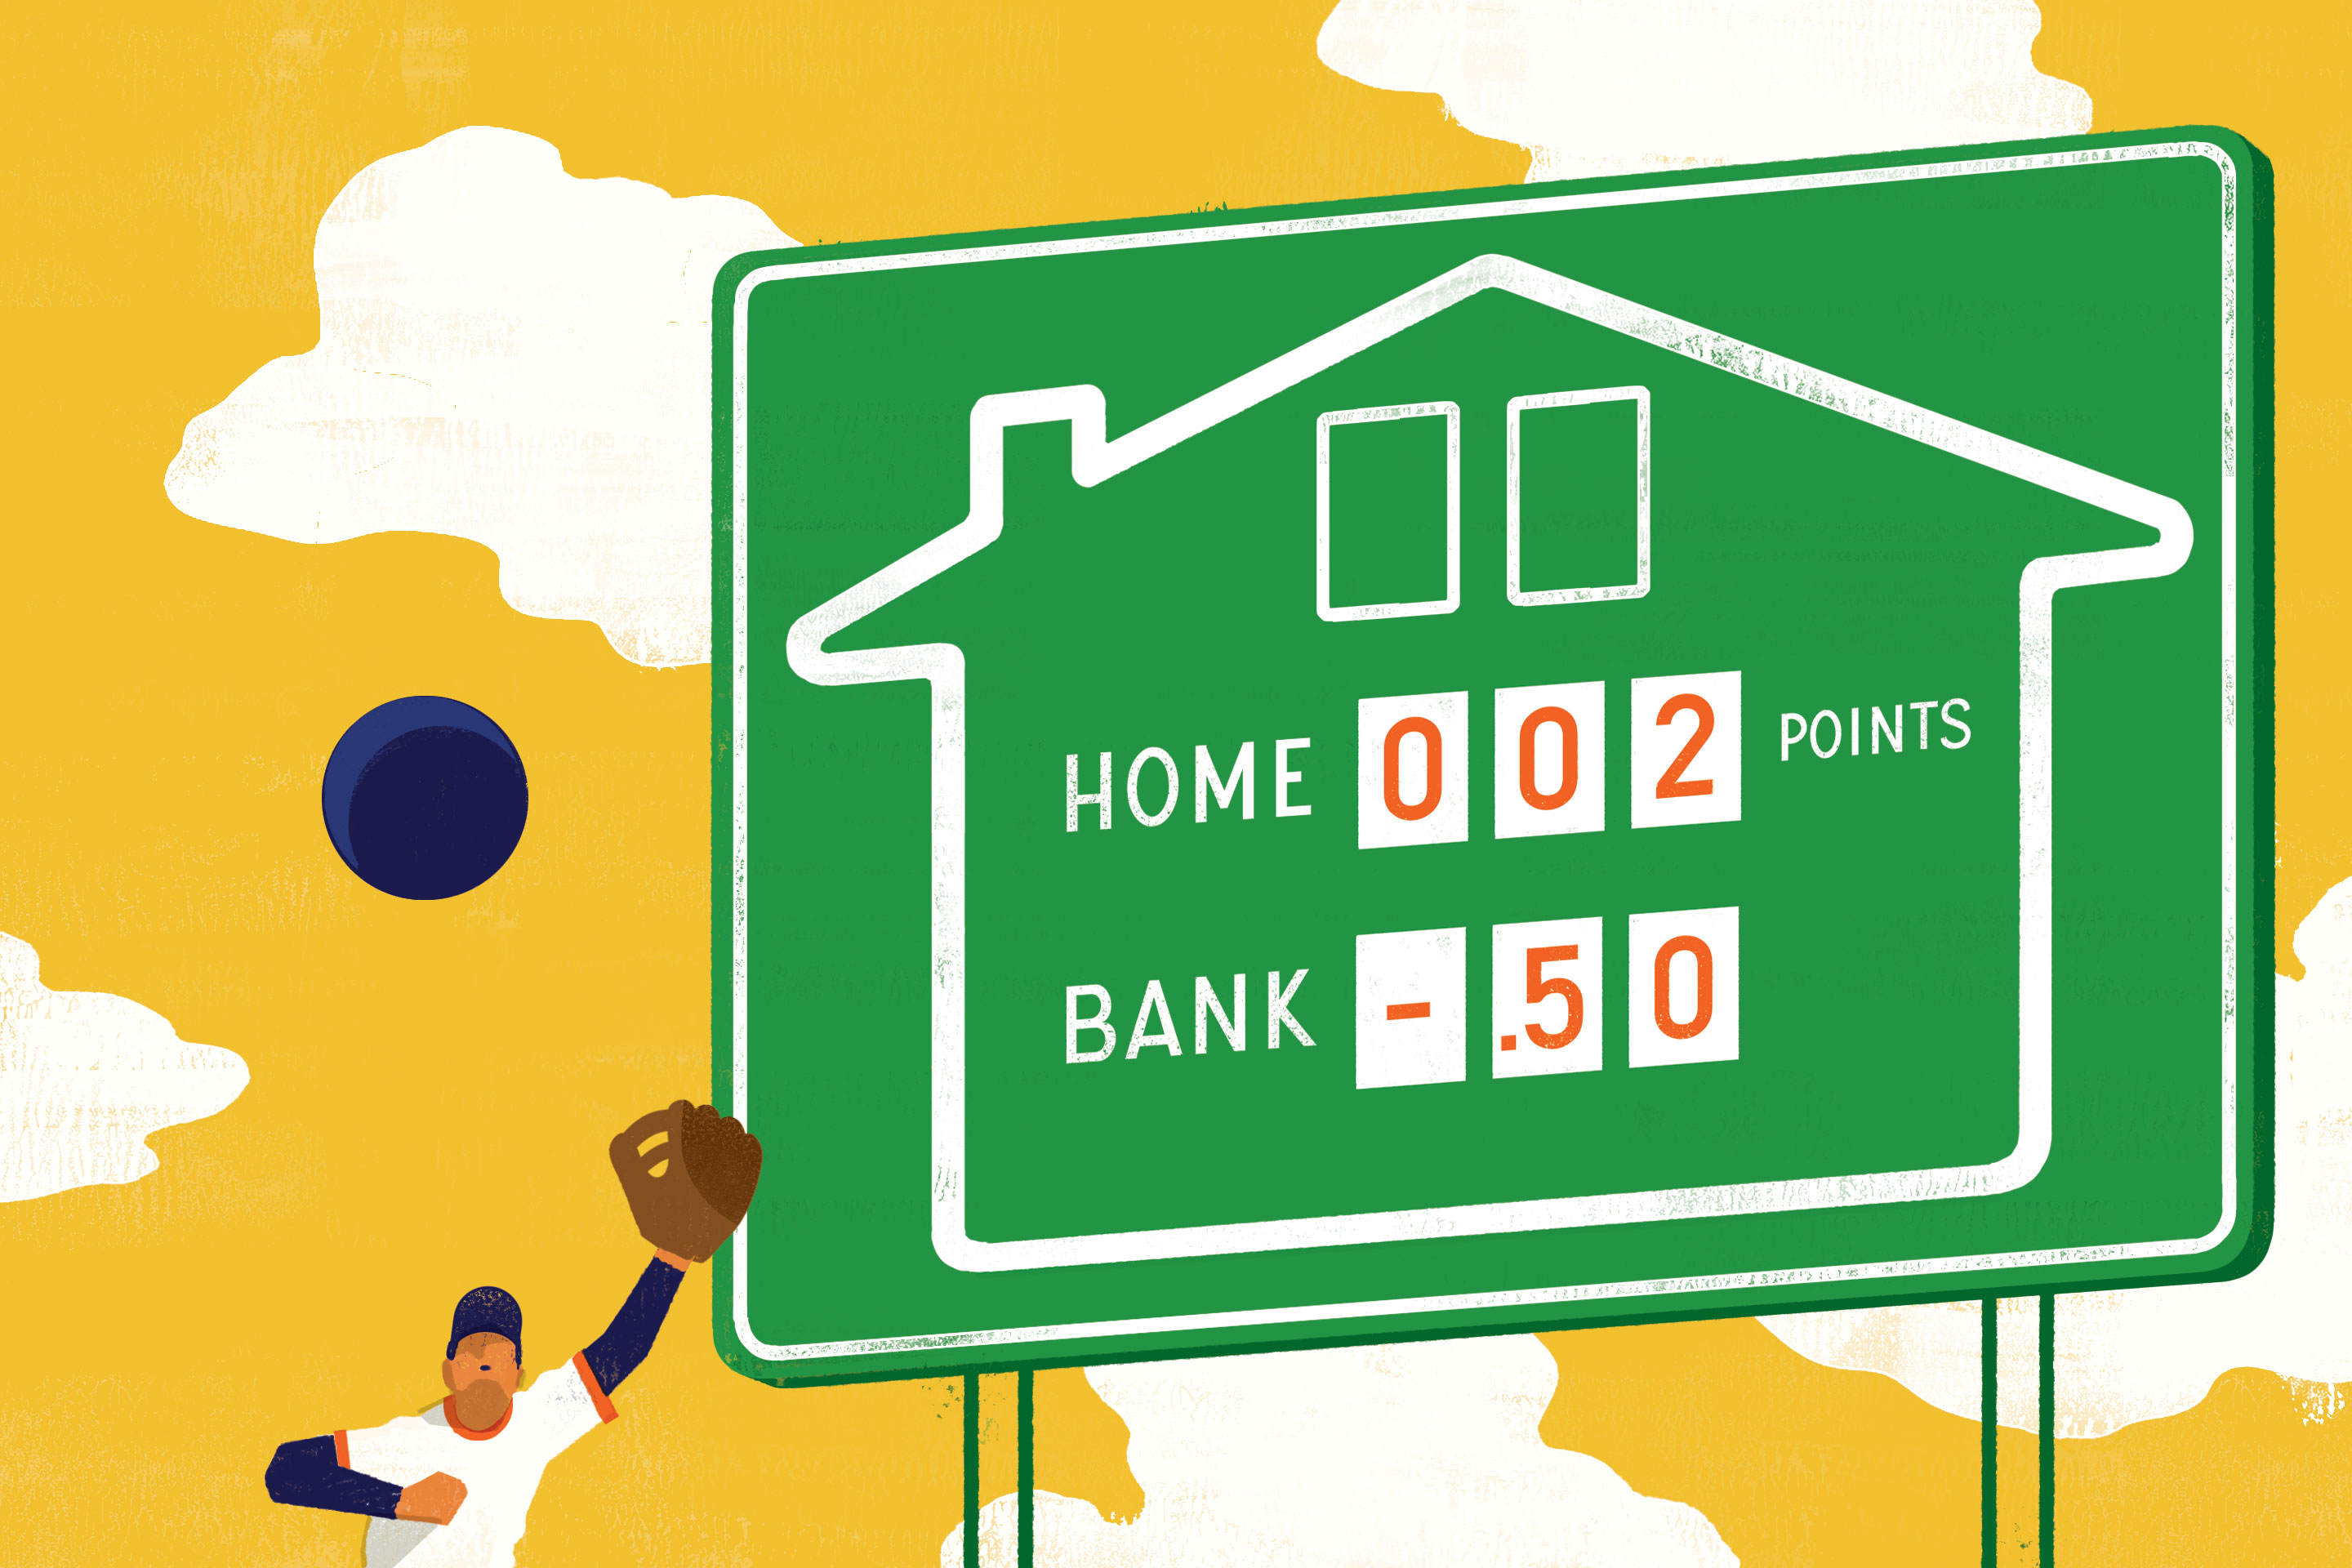 Buying Mortgage Points Can Lower Your House Payments. But What the Heck Are They?